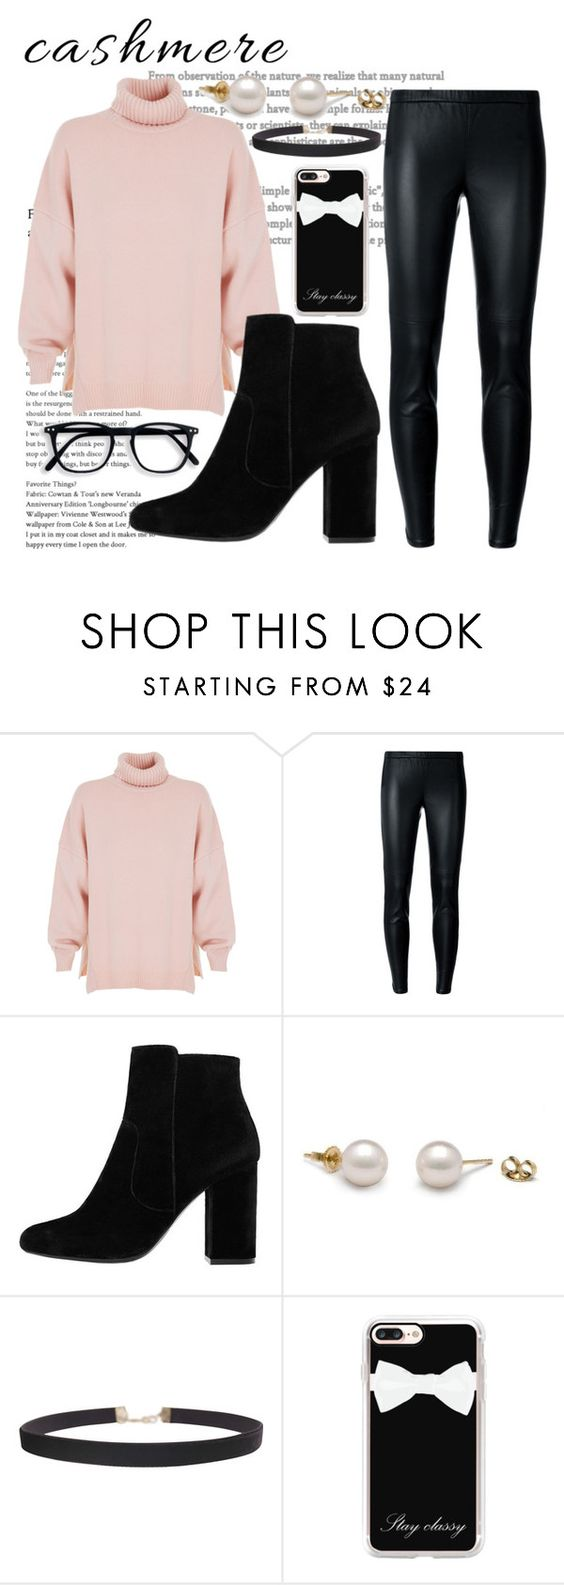 """Pinky promise 💕"" by rebeckarosdahl ❤ liked on Polyvore featuring TIBI, MICHAEL Michael Kors, MANGO, Humble Chic and Casetify"